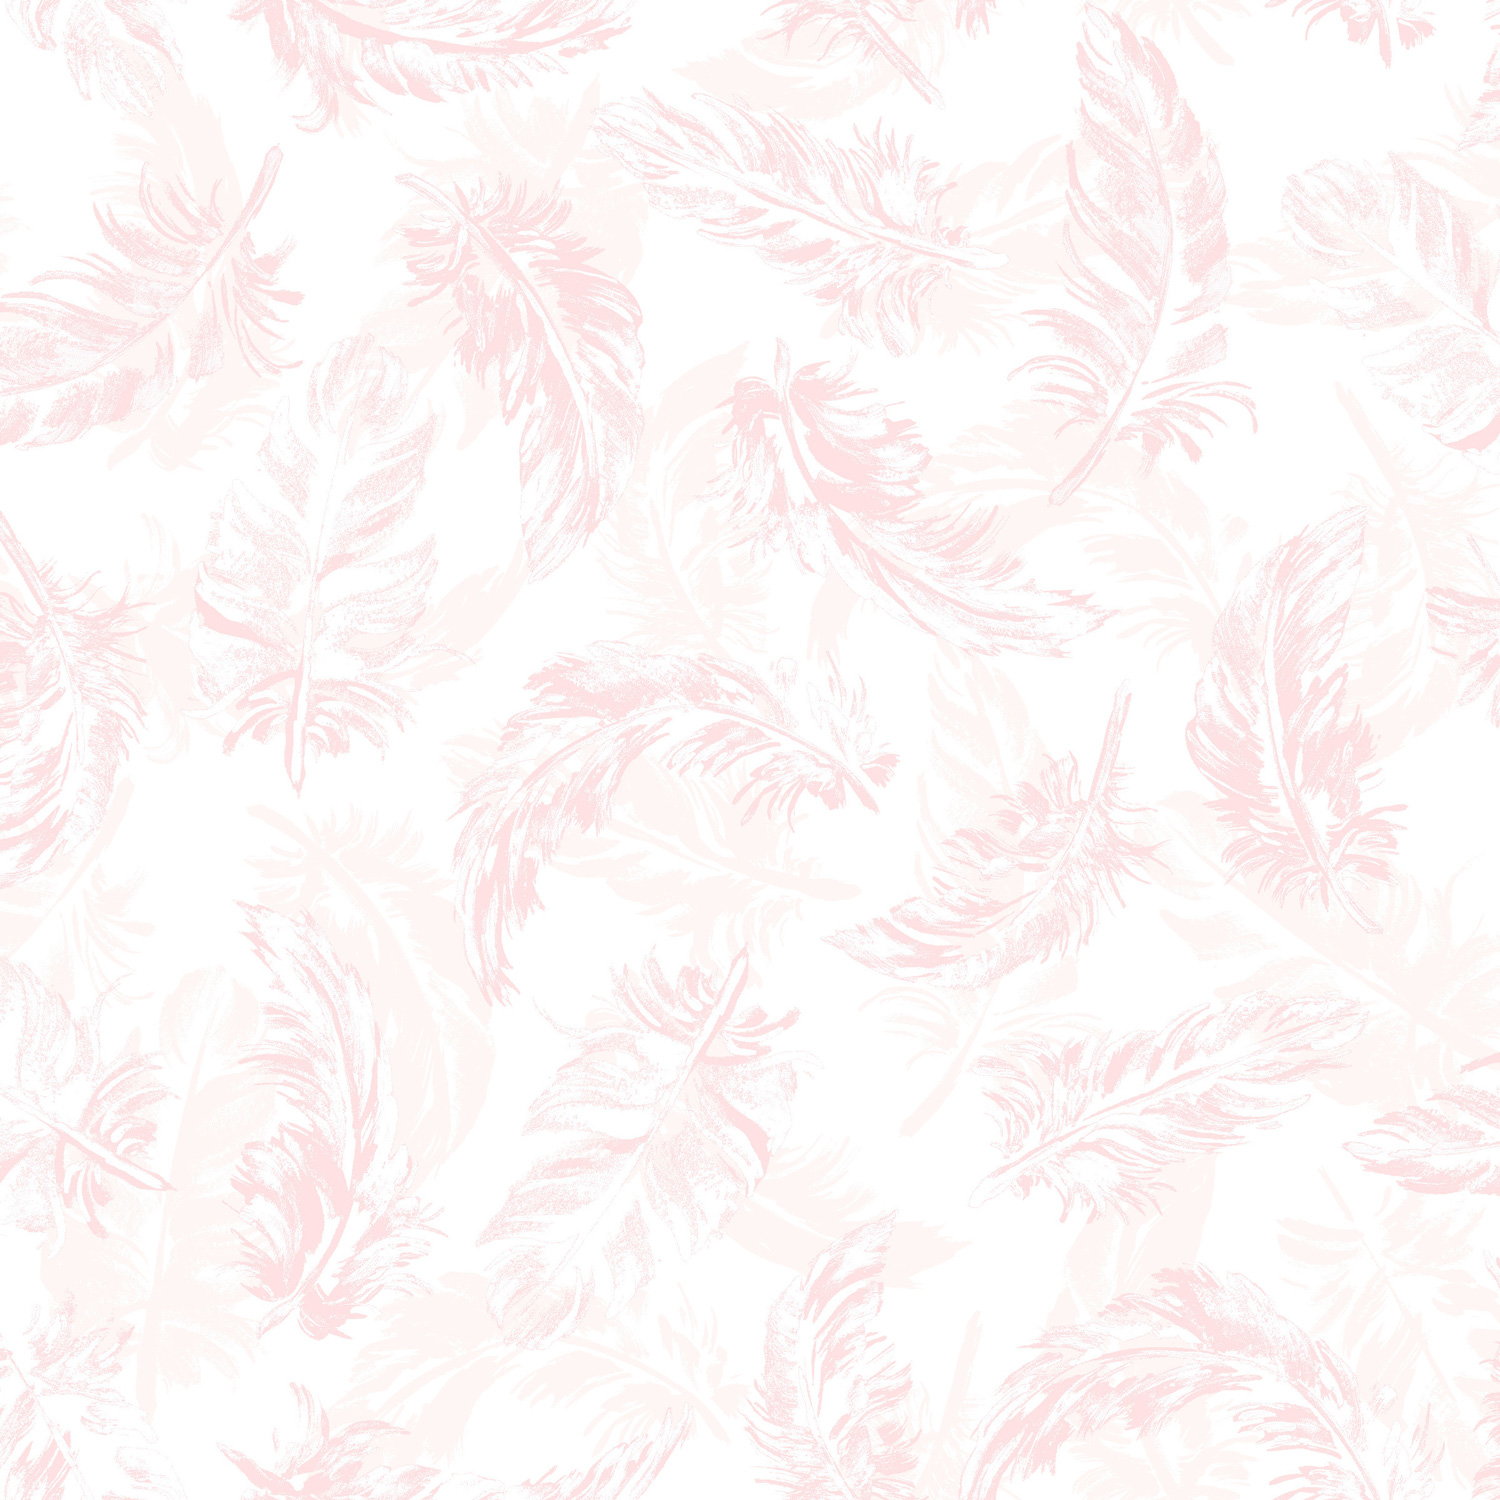 RJR - Enchanted Swan - Light as a Feather (Ballet Pink)